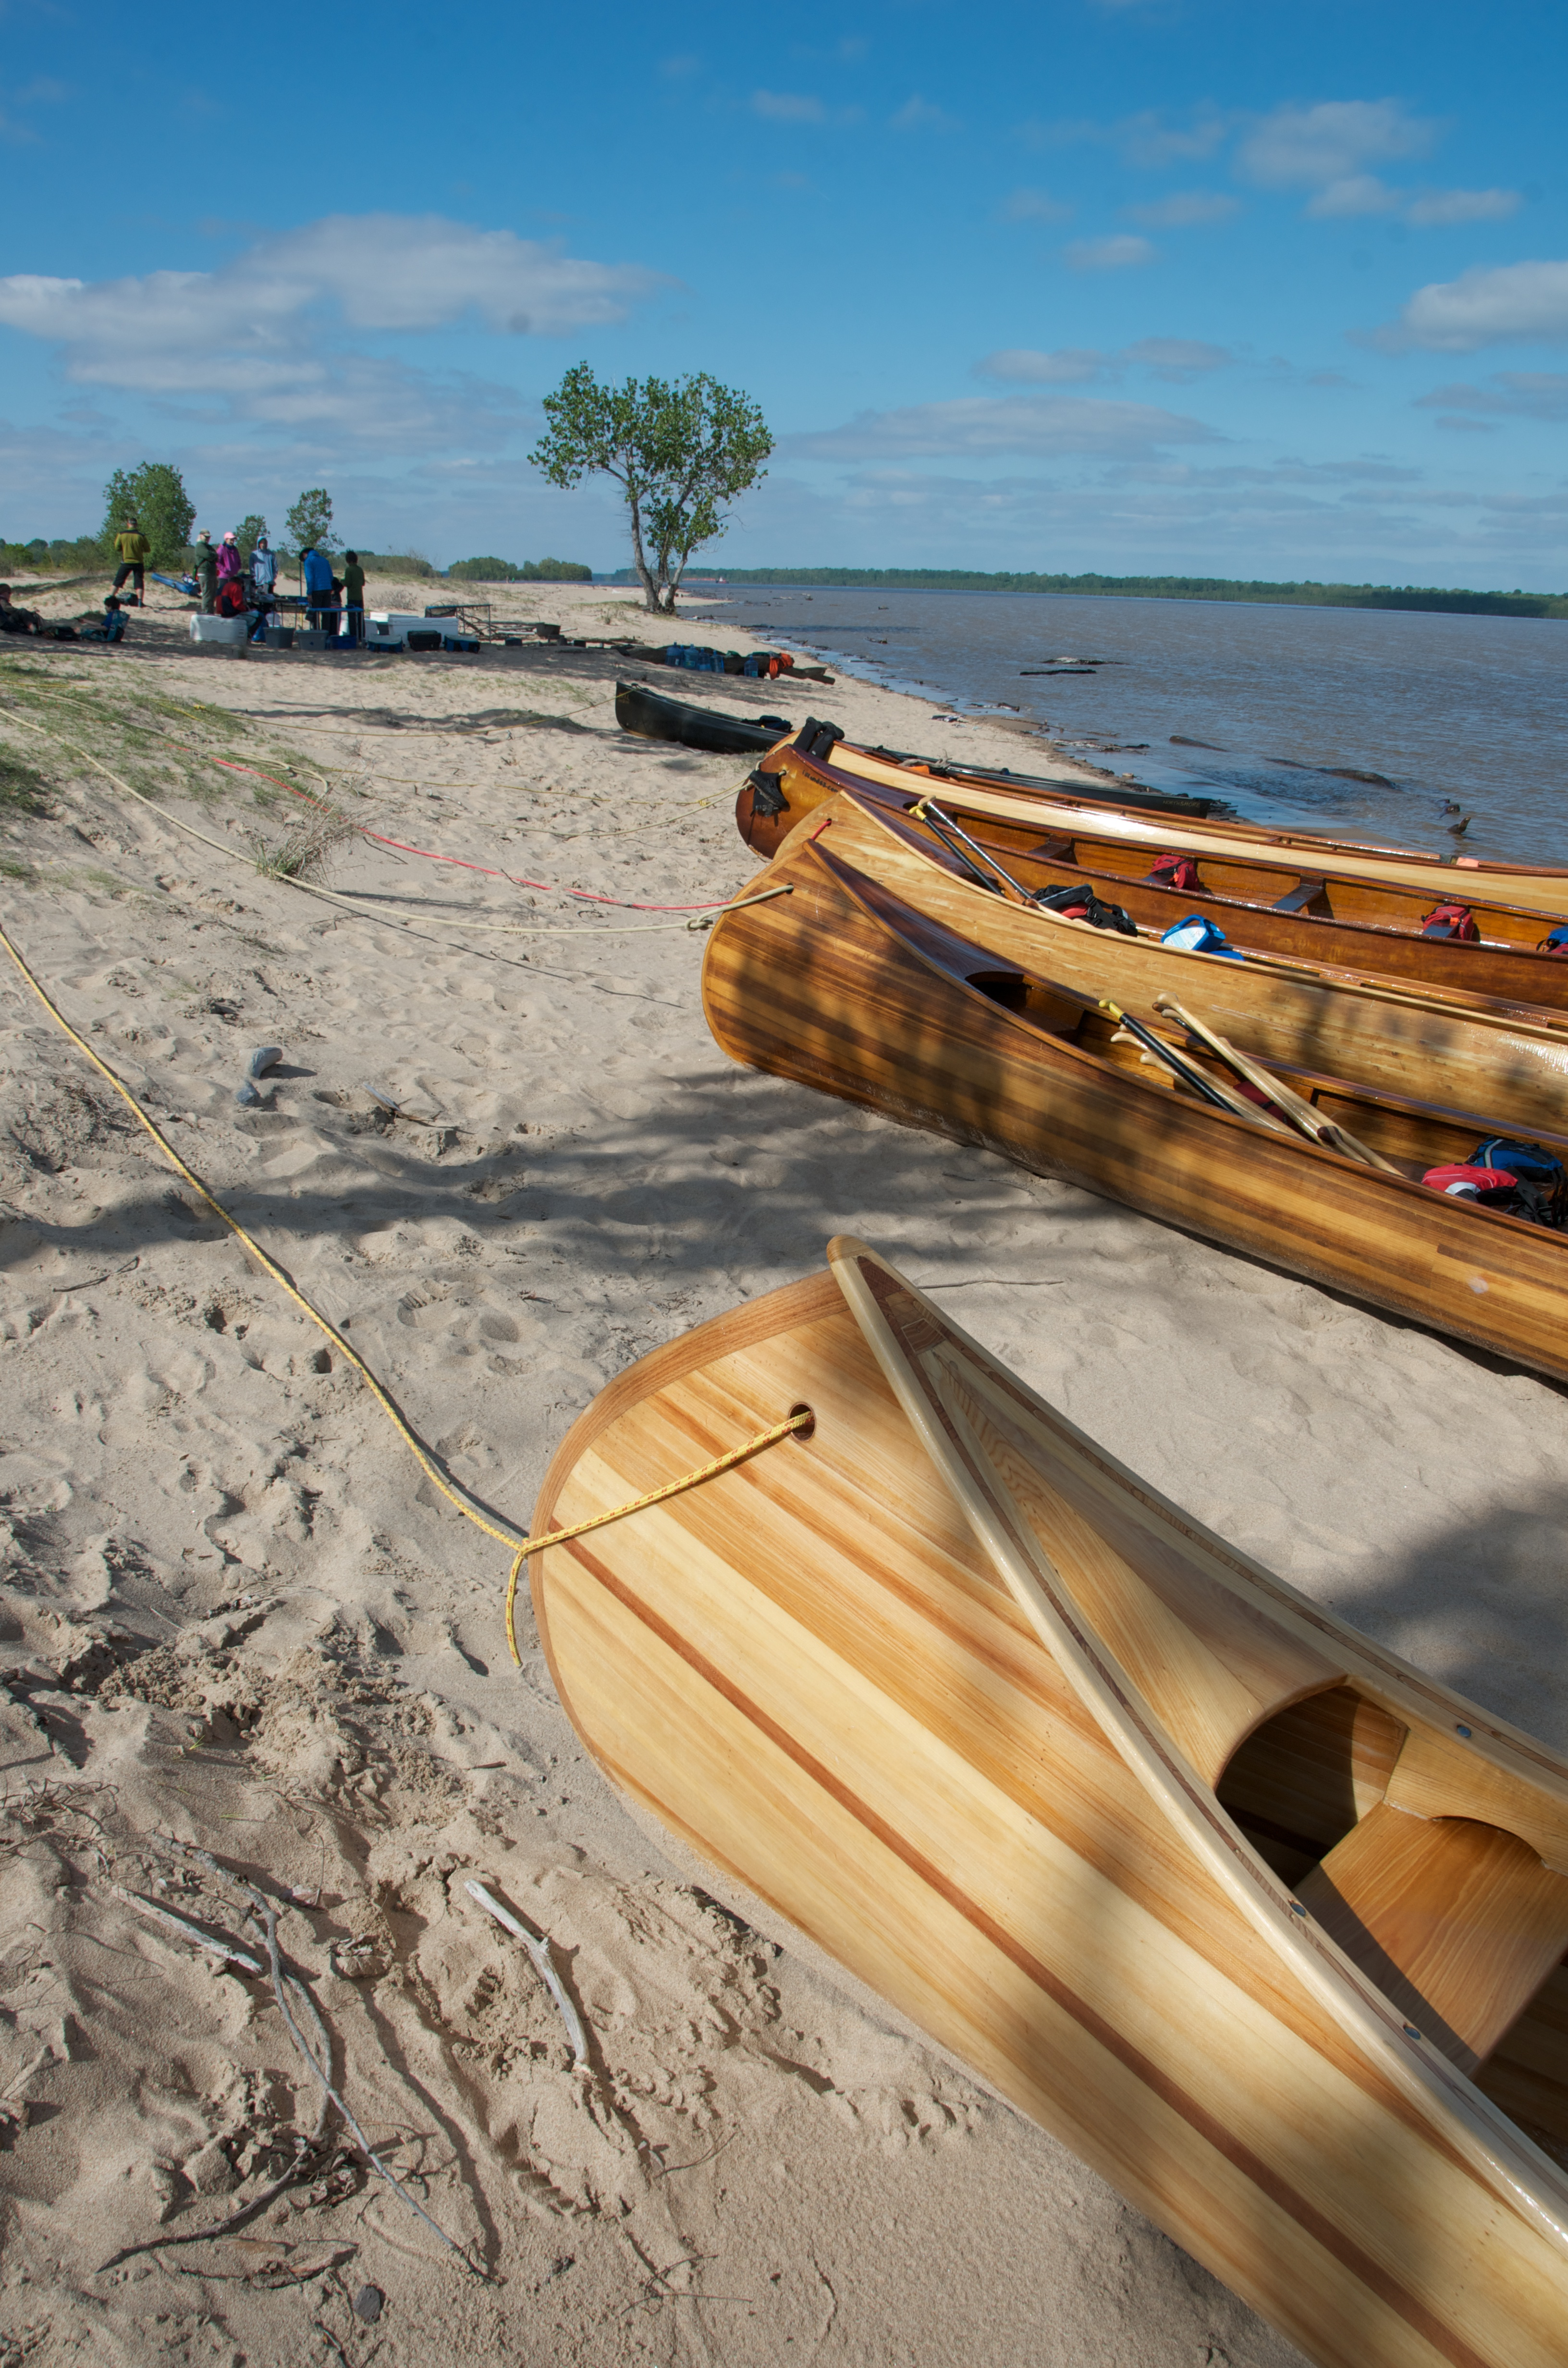 Public spaces on the river are critical. Many canoes sit unoccupied on a sandy beach. Image courtesy of John Ruskey.